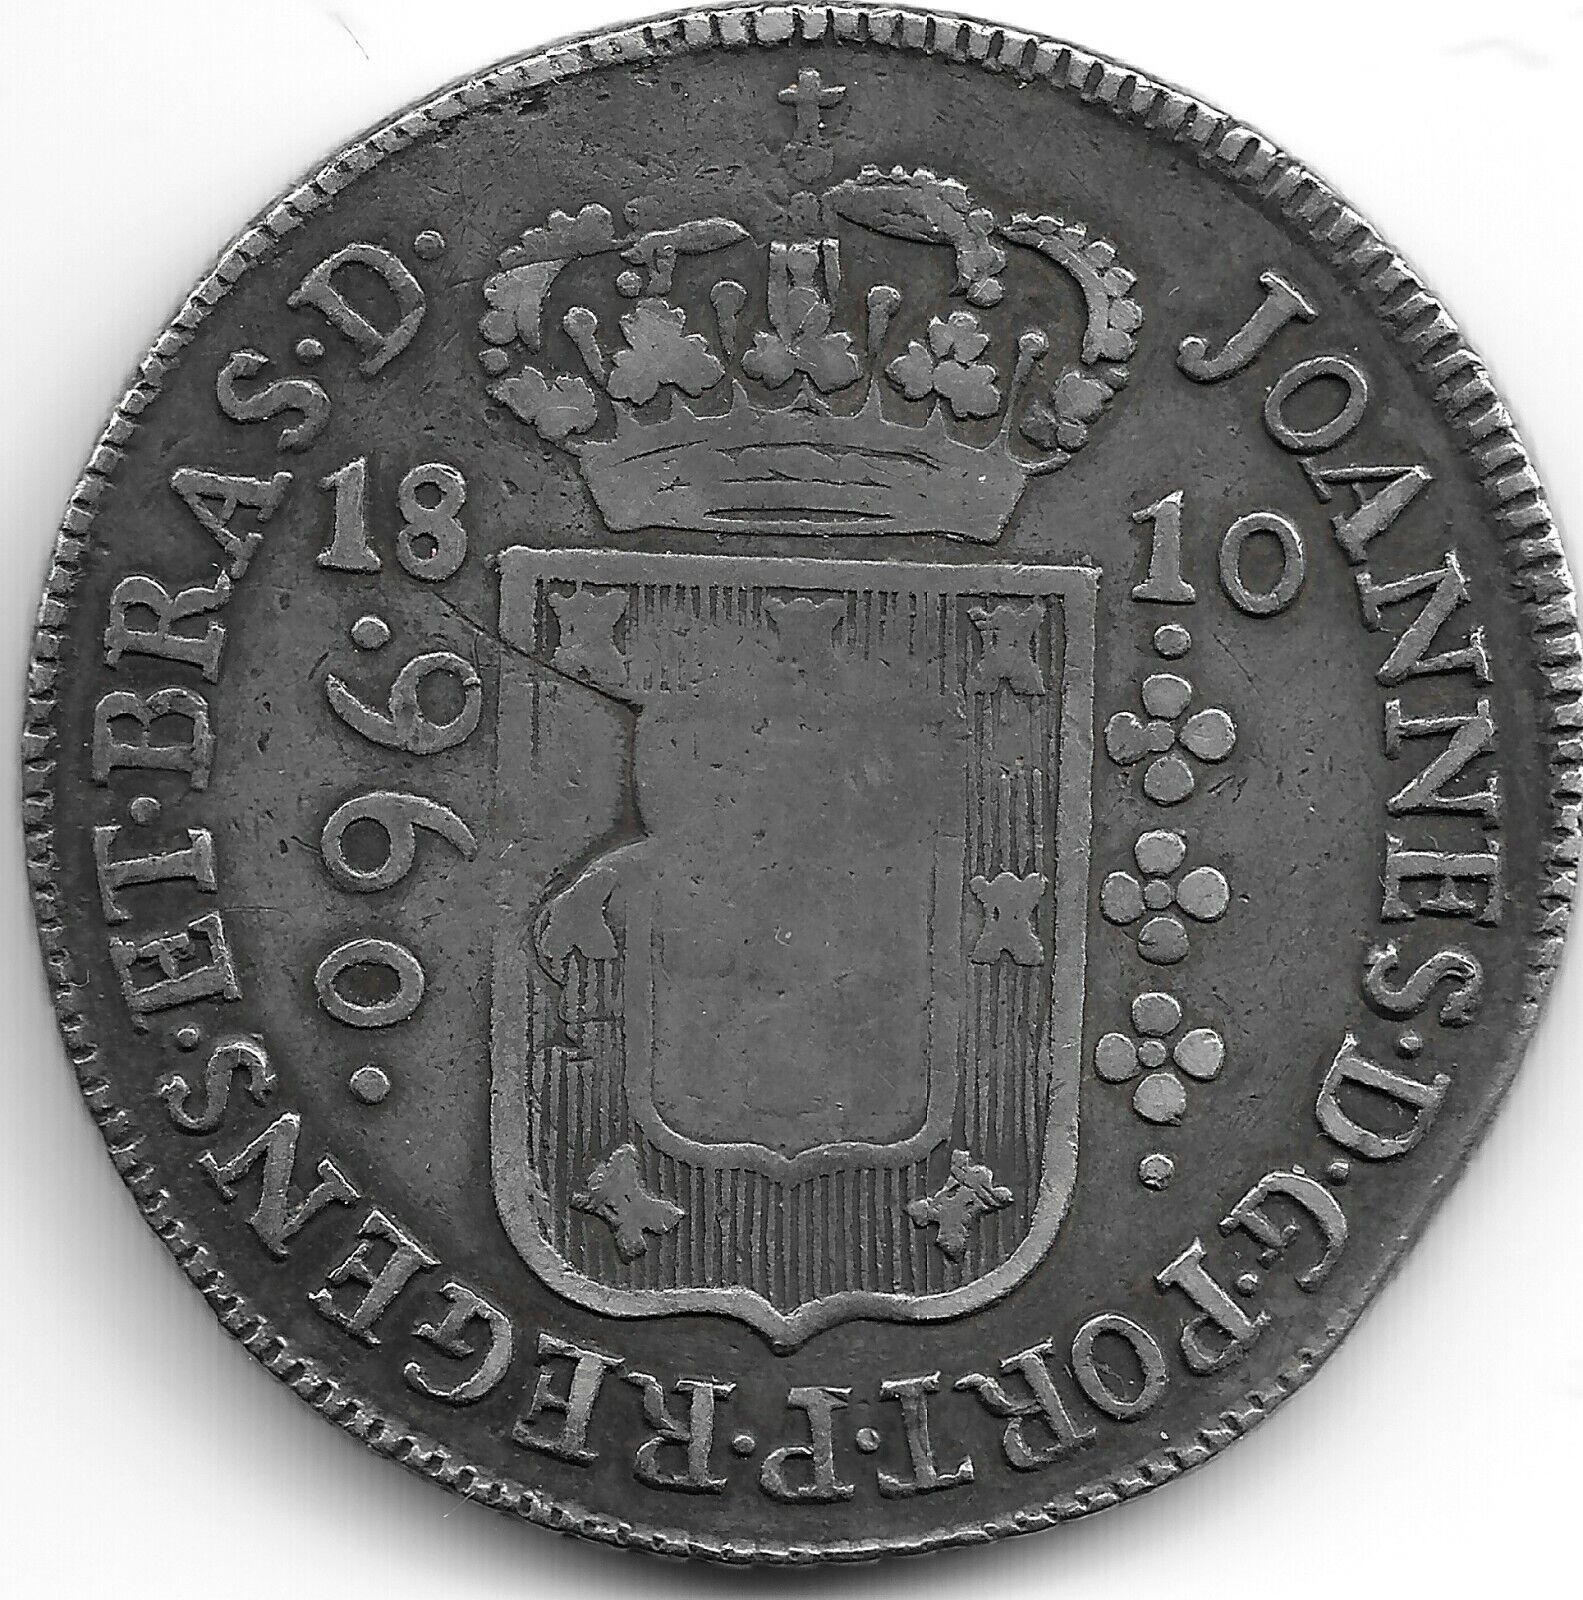 OVERSTRIKE Brazil 1810 Silver 960 Reis Coin Struck On Spanish Colonial 8 Reales - $110.00